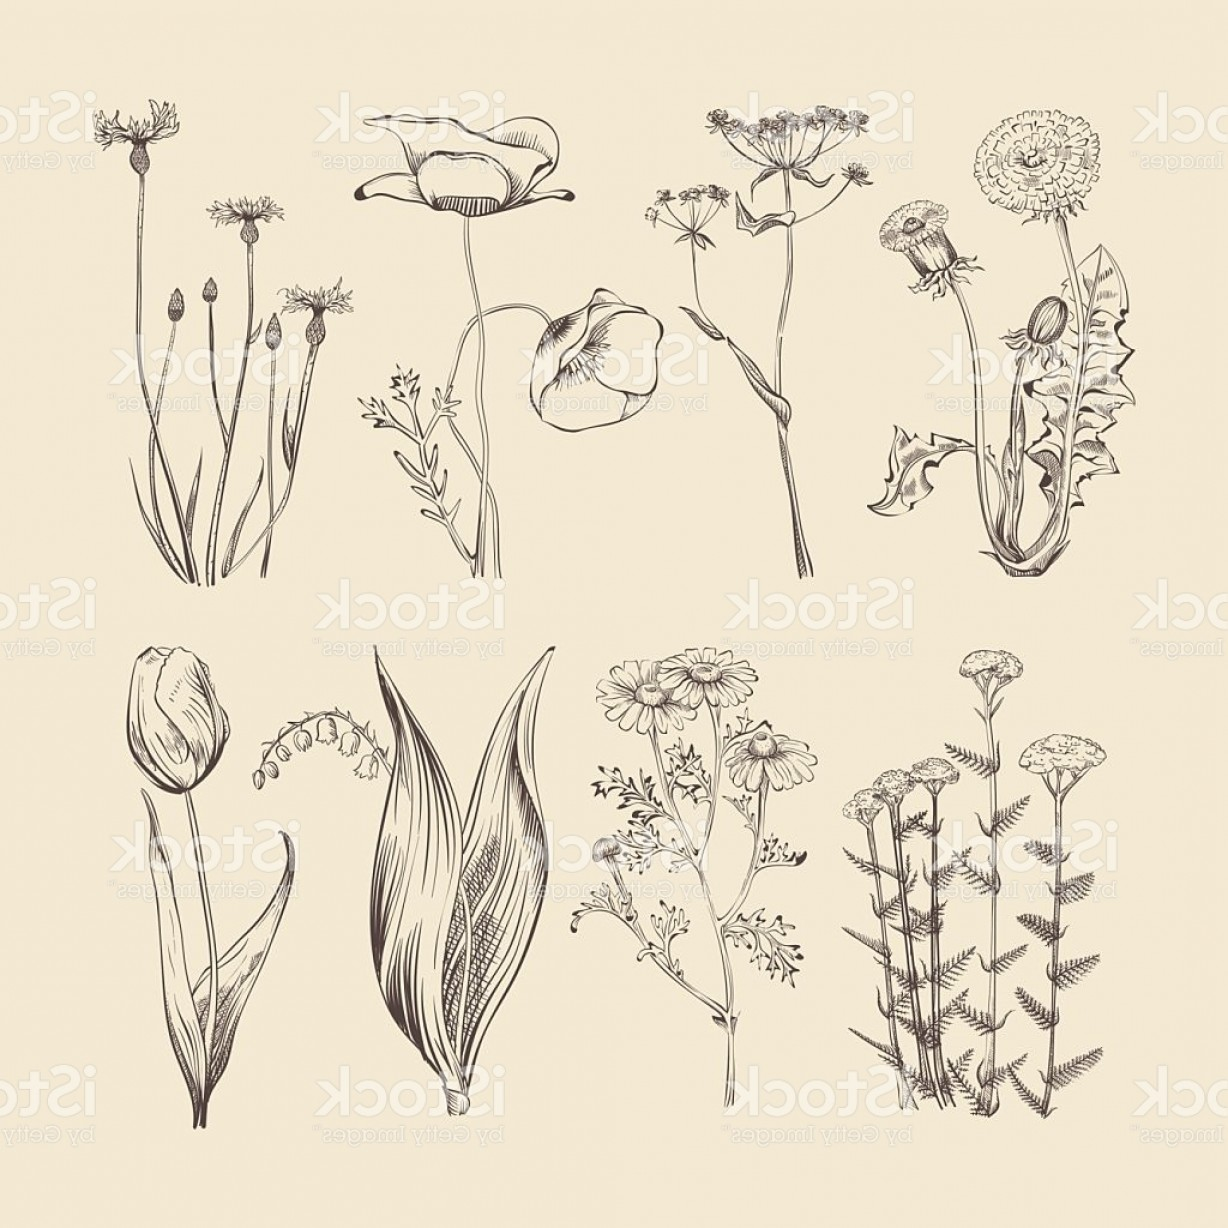 Botanical Flower Vectors: Wildflowers Herbs And Flowers Spring Or Summer Botanical Vector Collection Gm